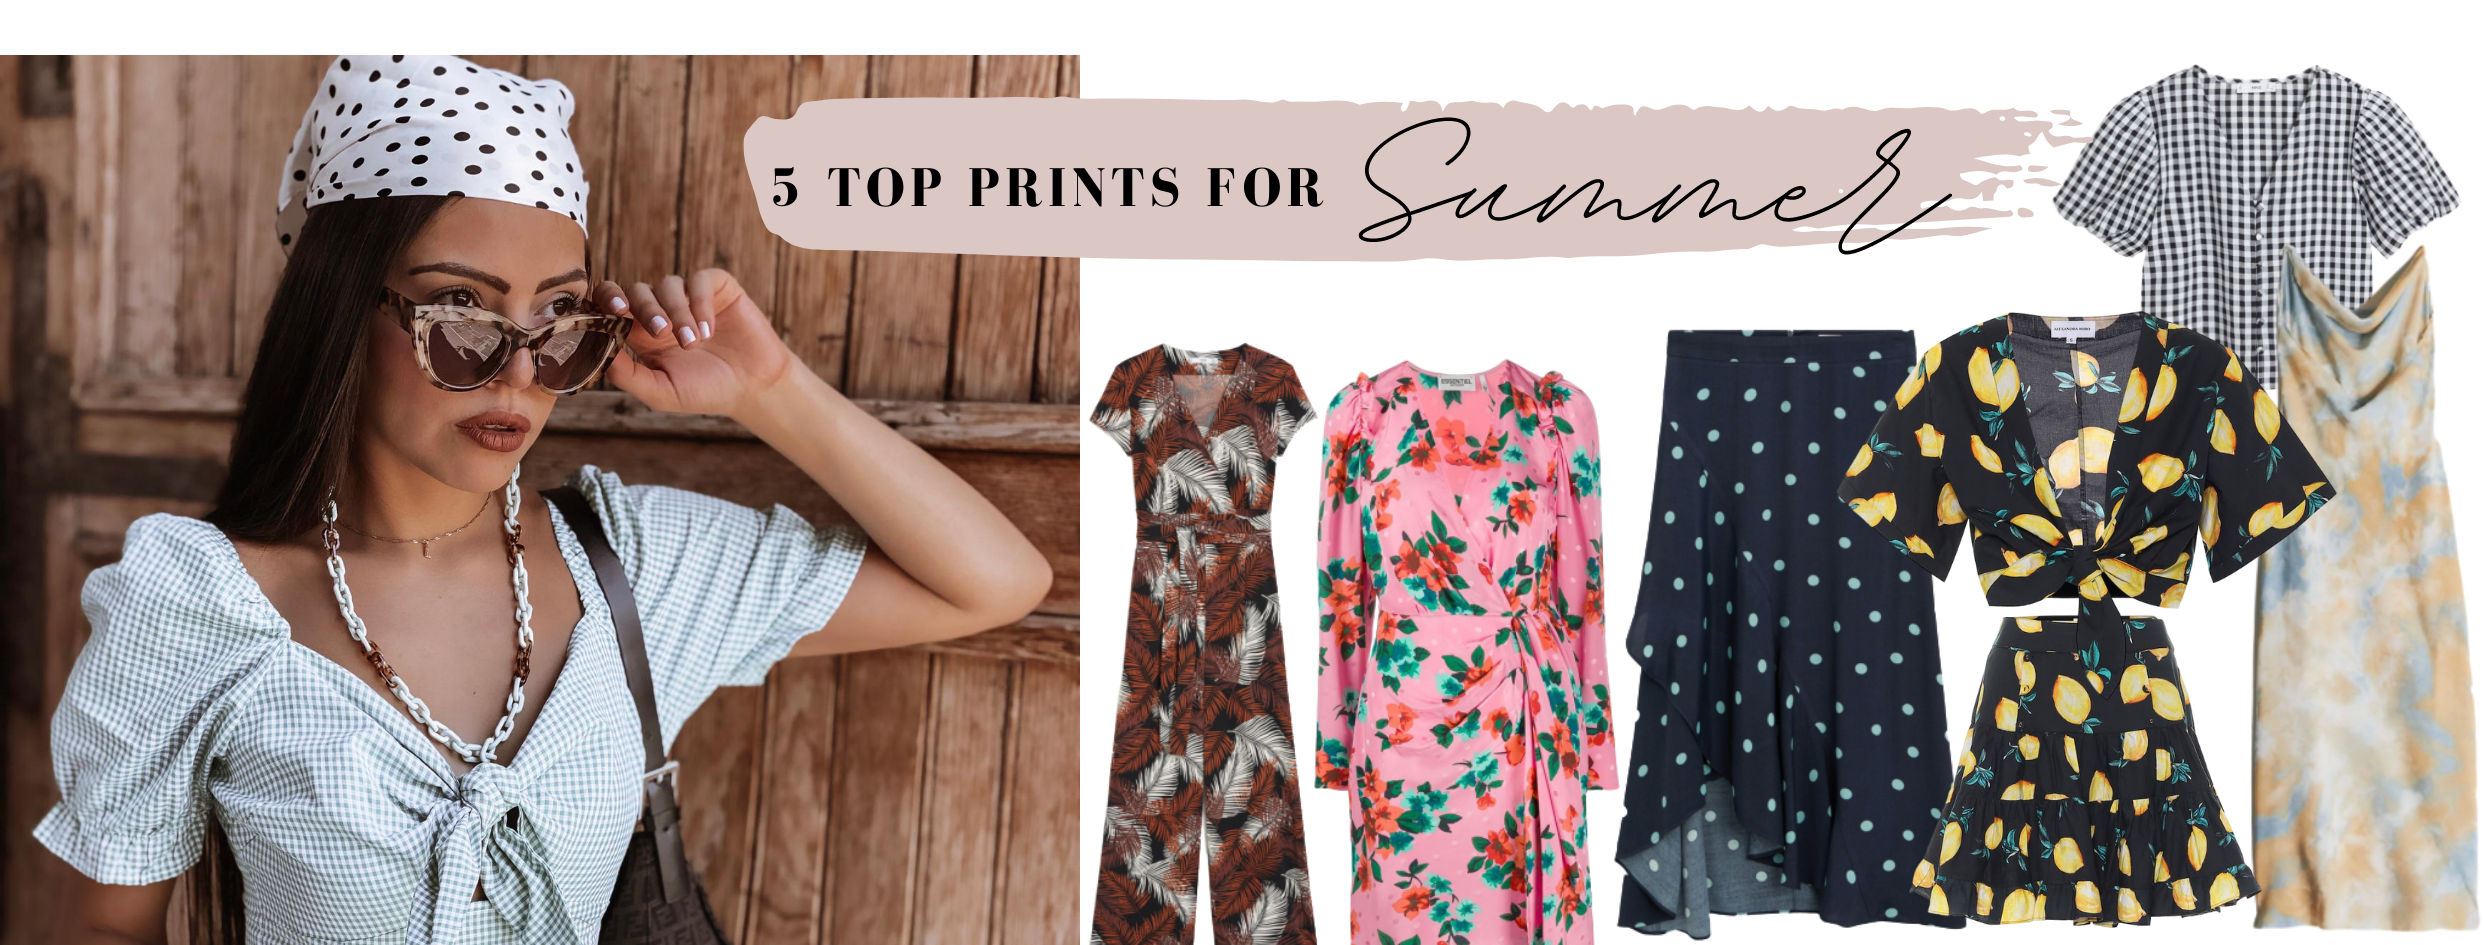 5 TOP SUMMER PRINTS